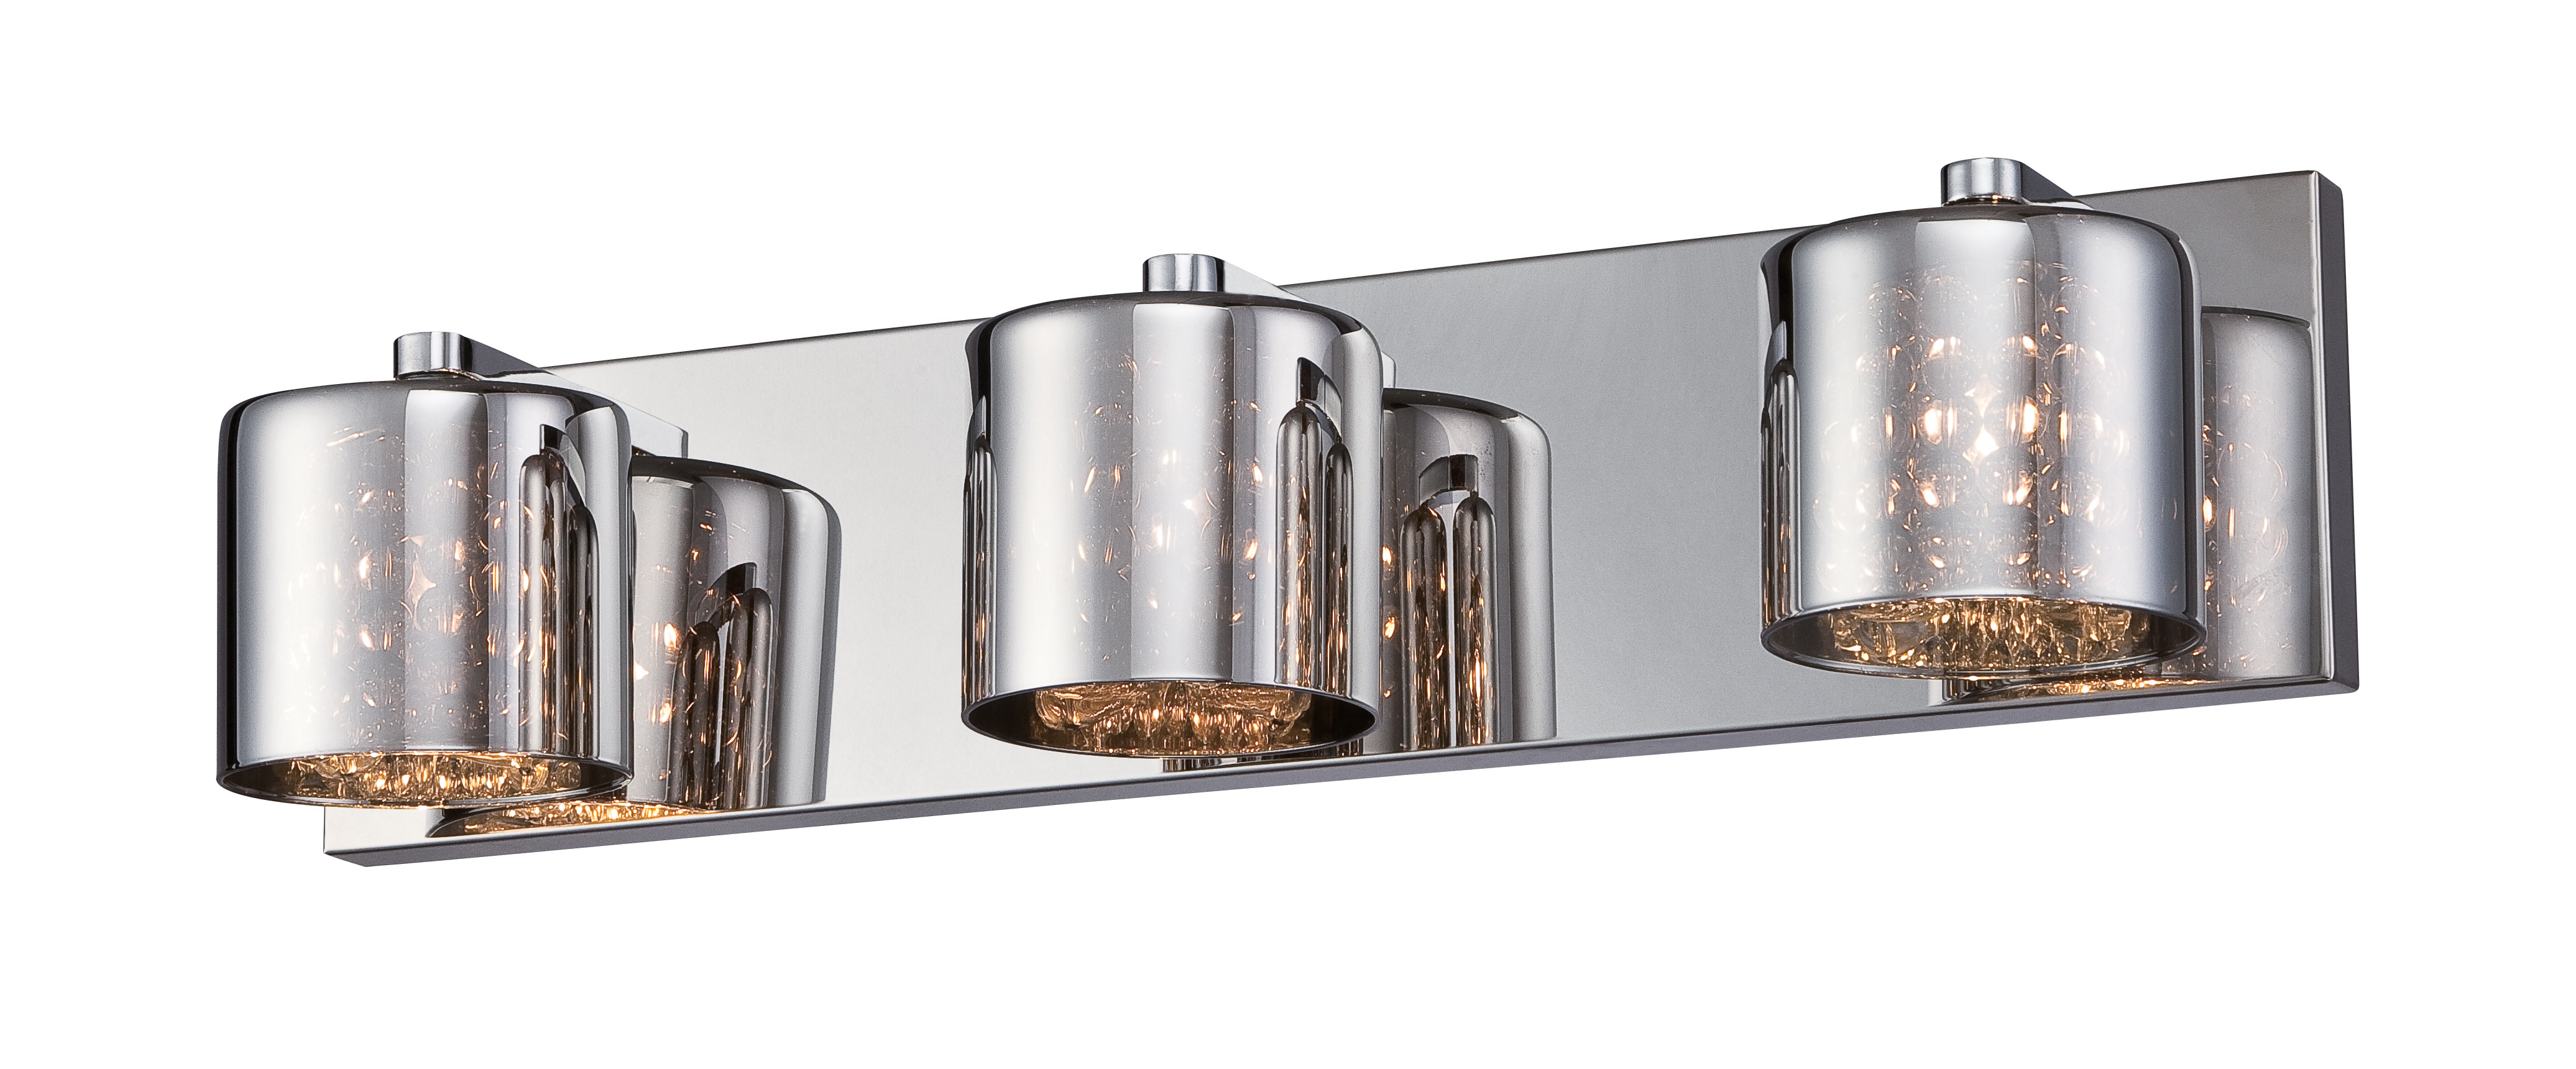 3-Light Comotti Vanity light fixture